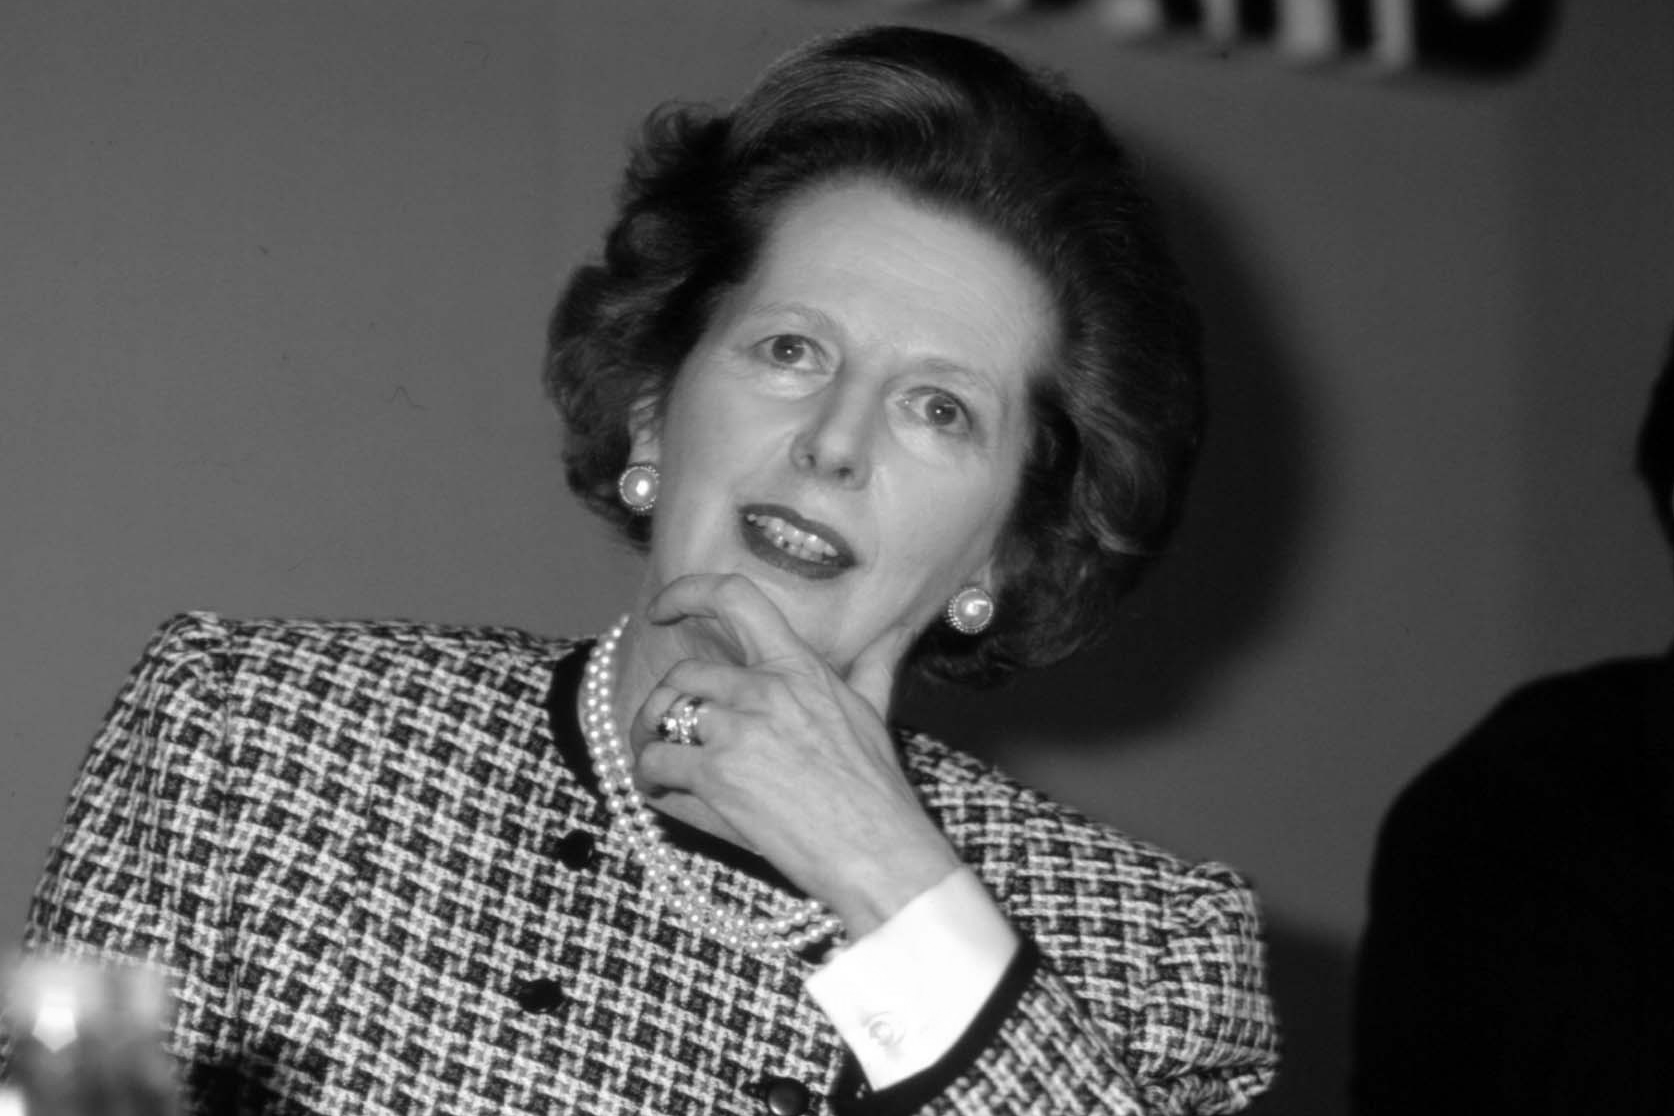 margaret thatcher essay An analysis of hugo young's book the iron lady: a biography of margaret thatcher would include how he uses a critical tone that eases into a conversational tone as he talks about thatcher's family and past this biography of margaret thatcher explains how the events that occurred in her life.